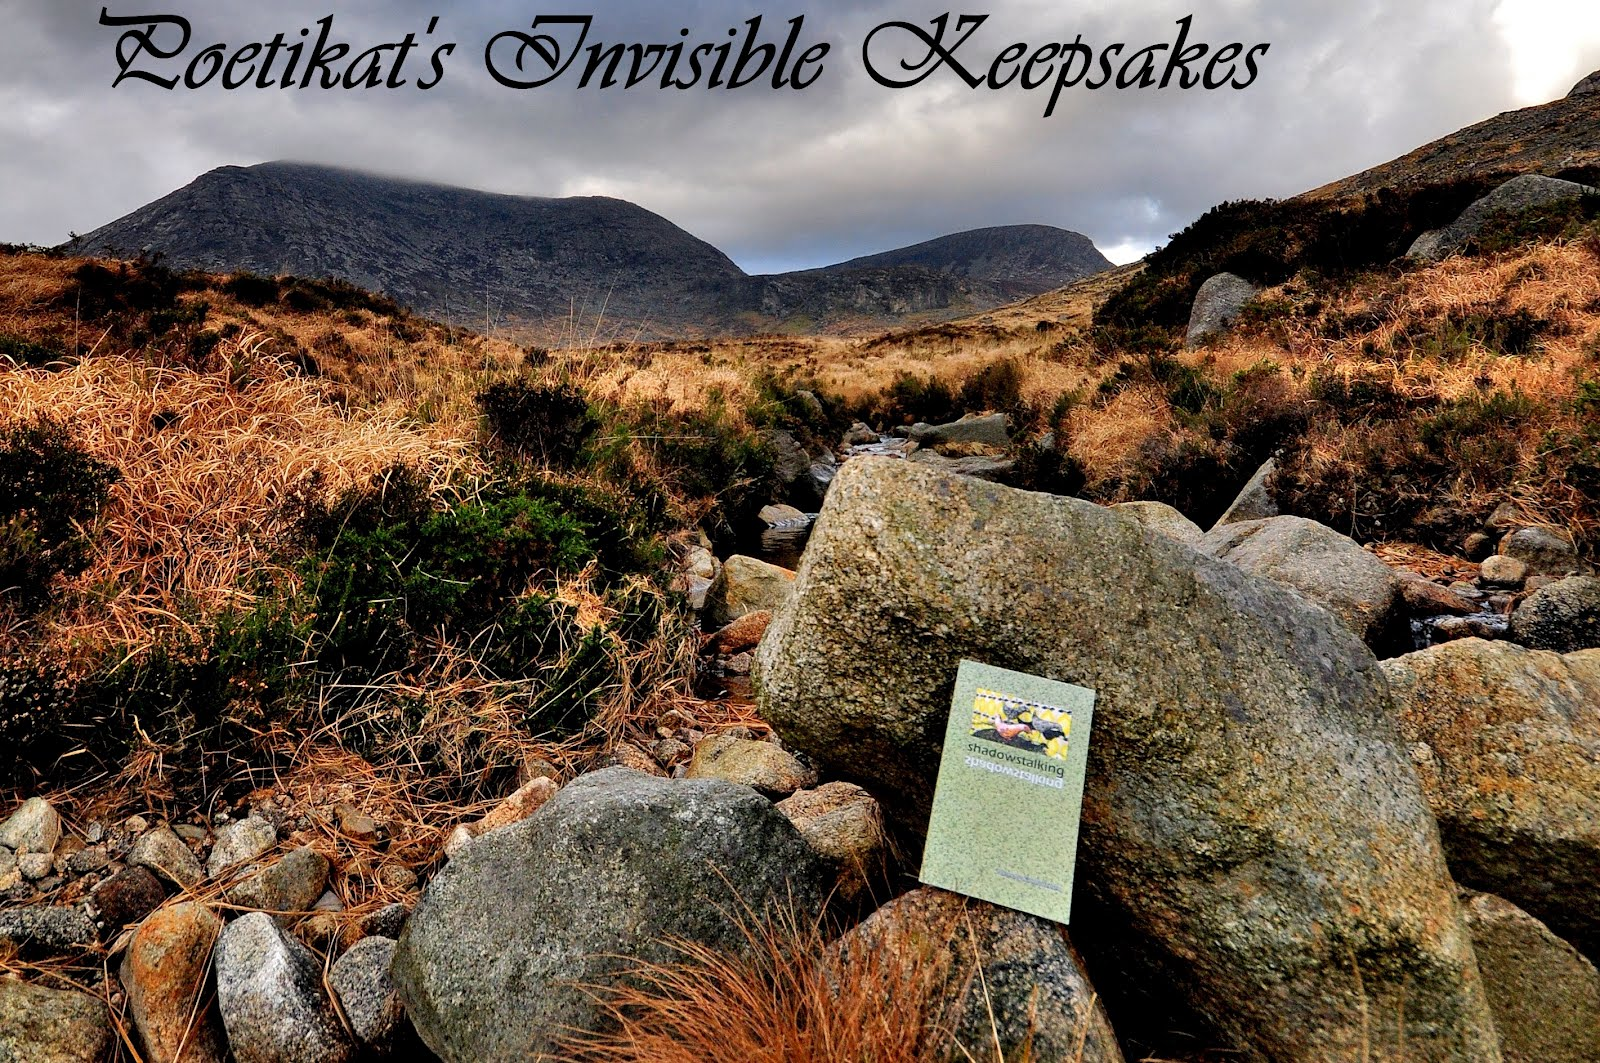 Poetikat's Invisible Keepsakes Revisited